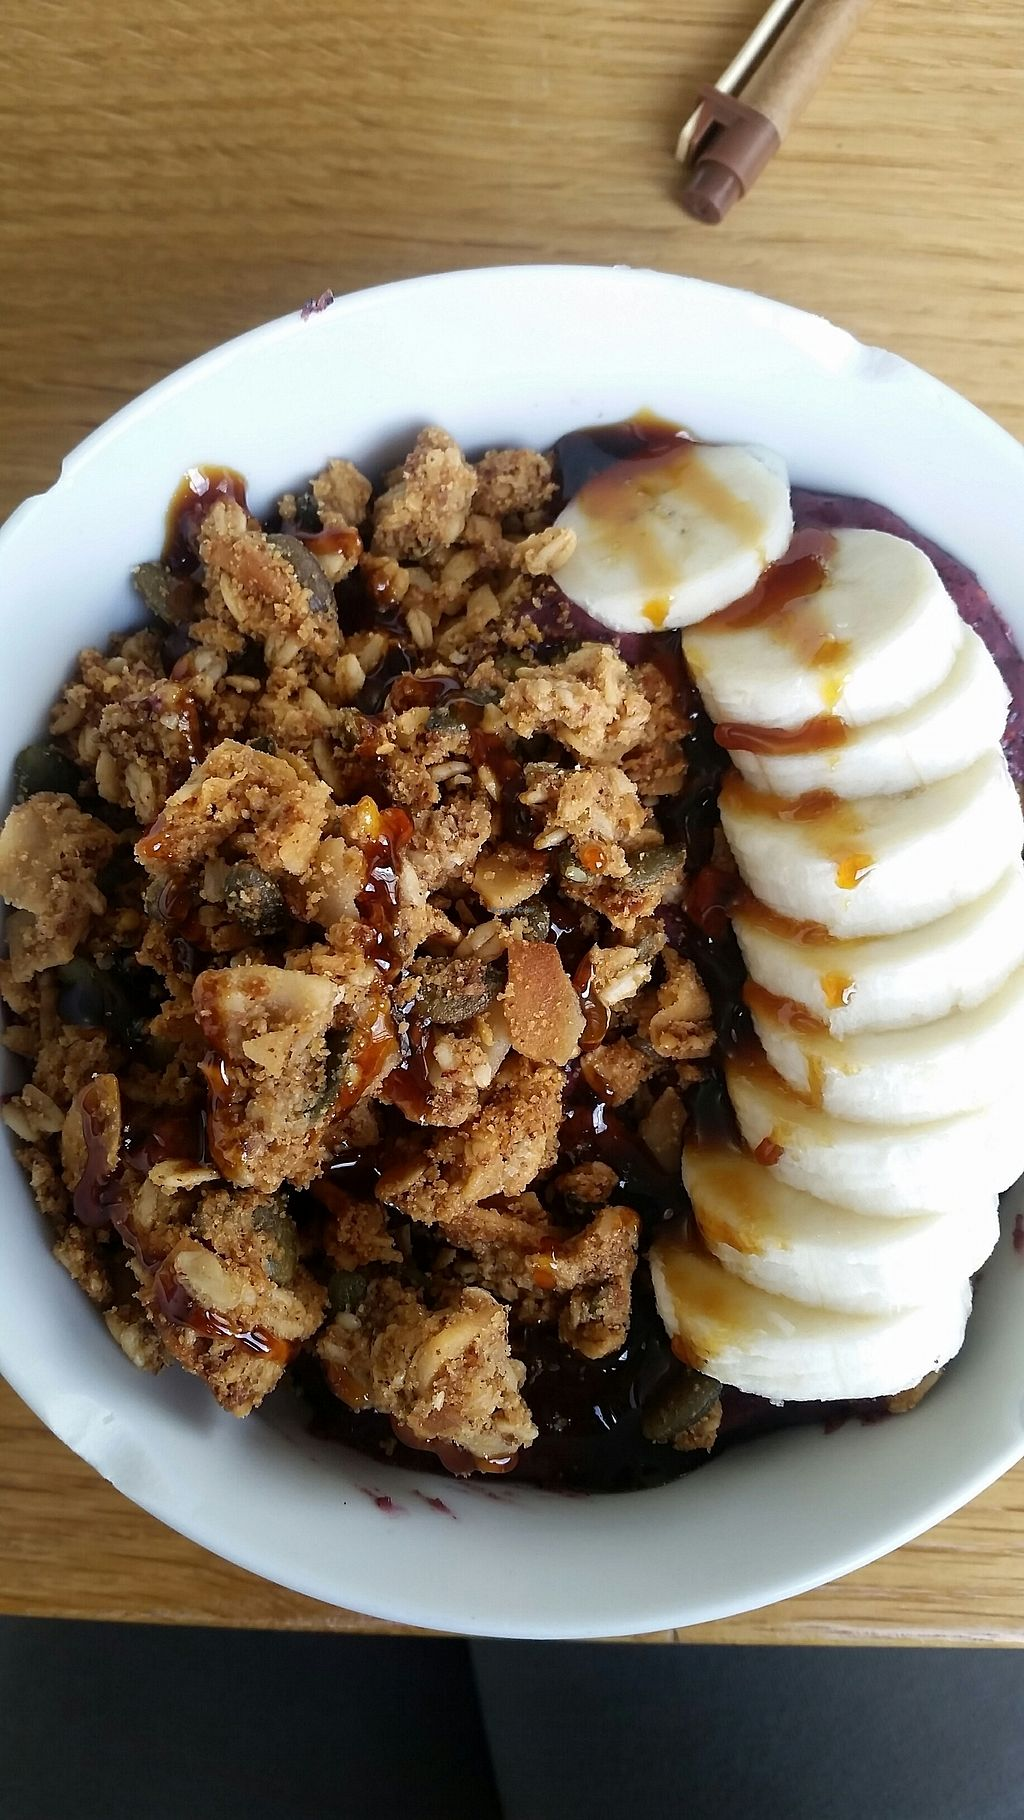 """Photo of Glory Juice - Olympic Village  by <a href=""""/members/profile/VeganForSnow"""">VeganForSnow</a> <br/>Acai bowl with coconut syrup on top yum yum <br/> September 19, 2017  - <a href='/contact/abuse/image/96929/305929'>Report</a>"""